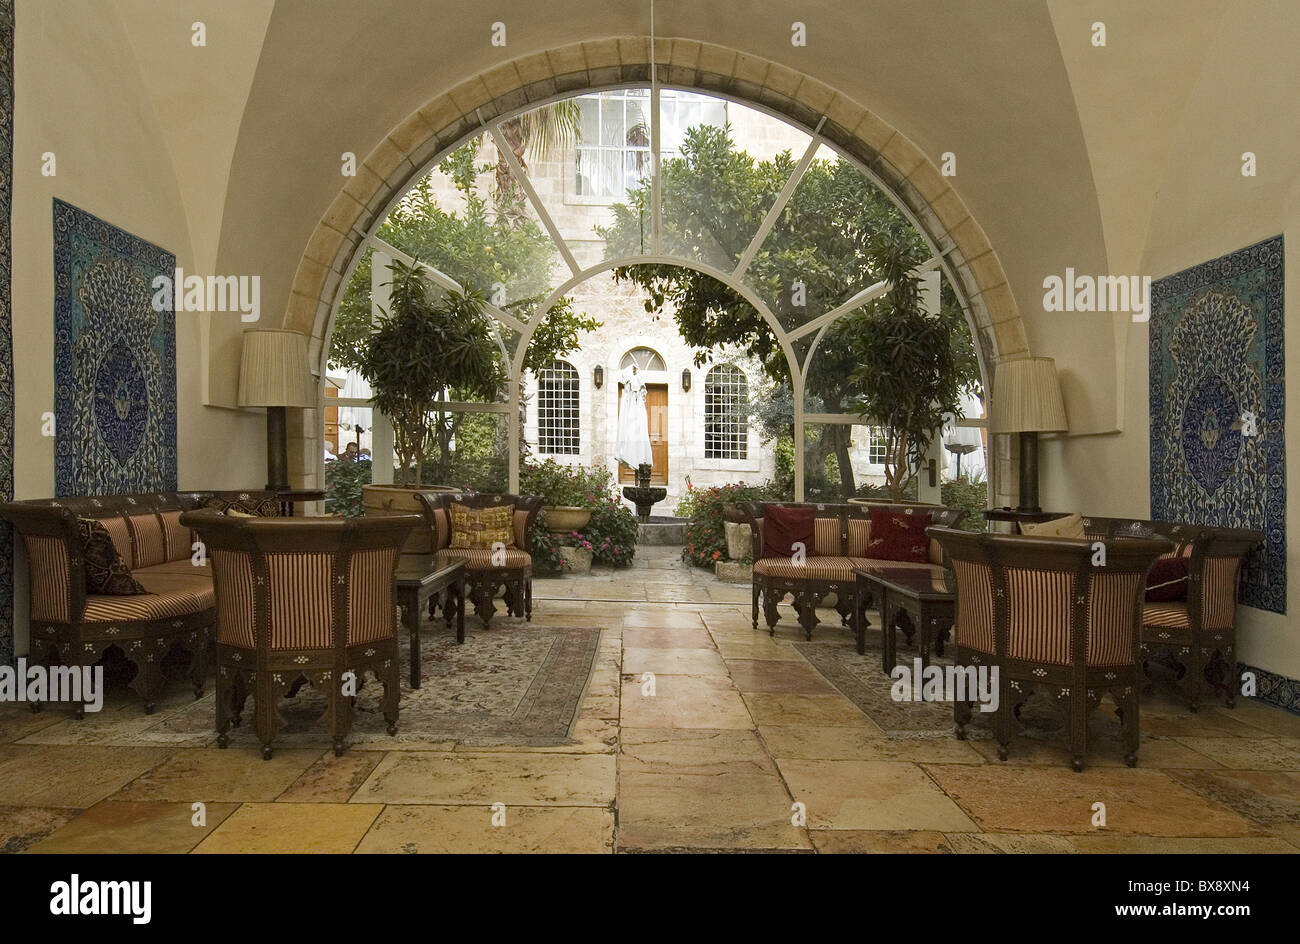 The lobby of the American Colony Hotel located in a historic building which previously housed the utopian American - Stock Image